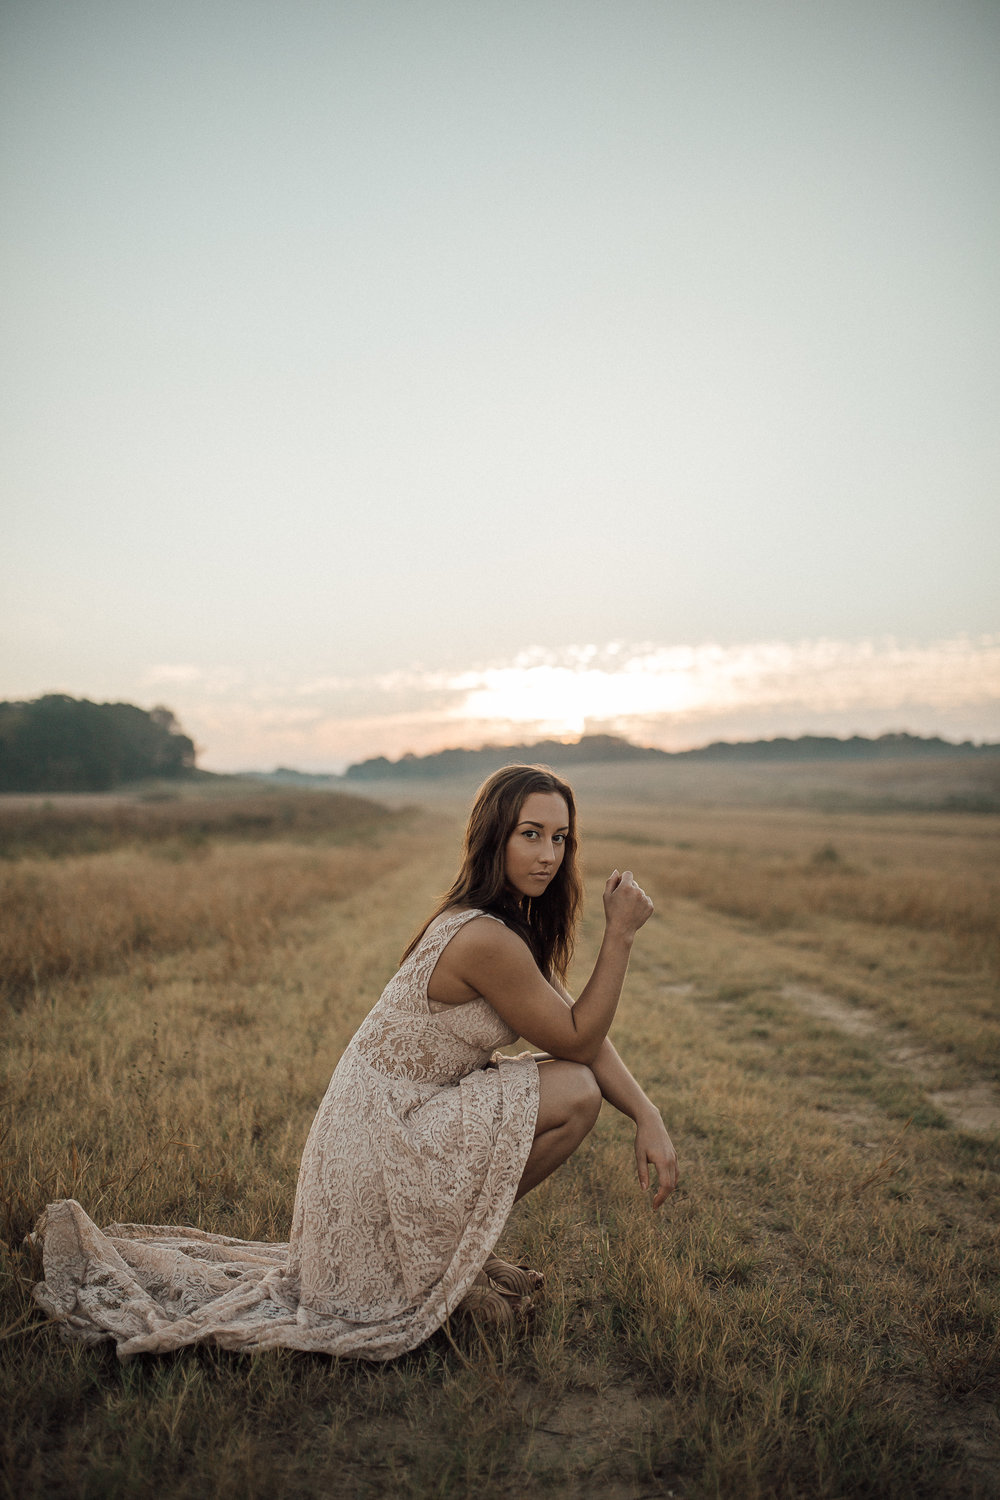 memphis-senior-photographer-bohemian-sunrise-photoshoot